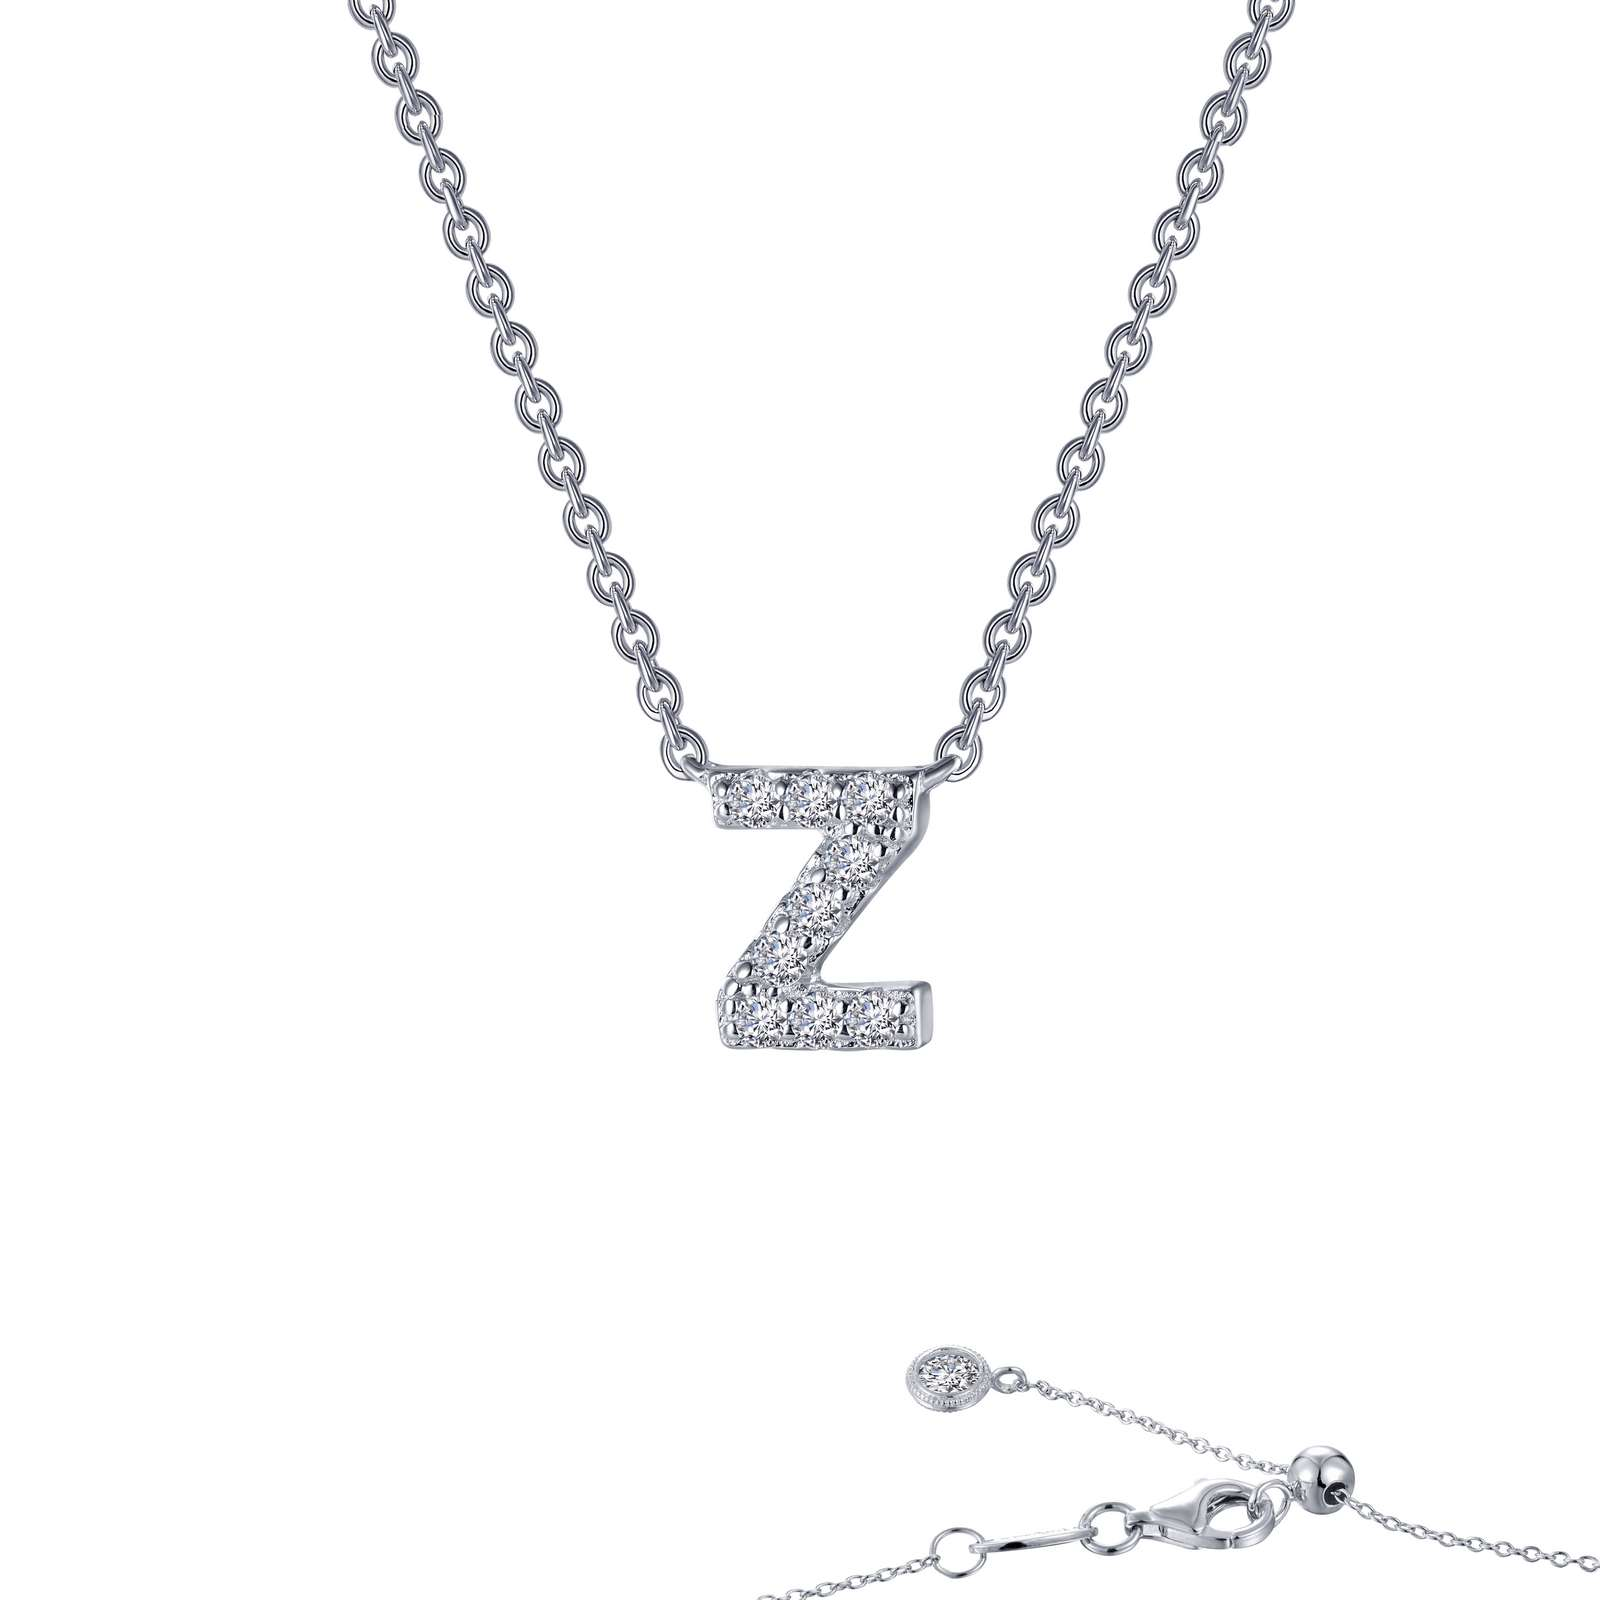 Find the perfect gift for any occasion with a designer or custom pendant from Grogan Jewelers.  Stop by one of our stores today for a closer look and more information.